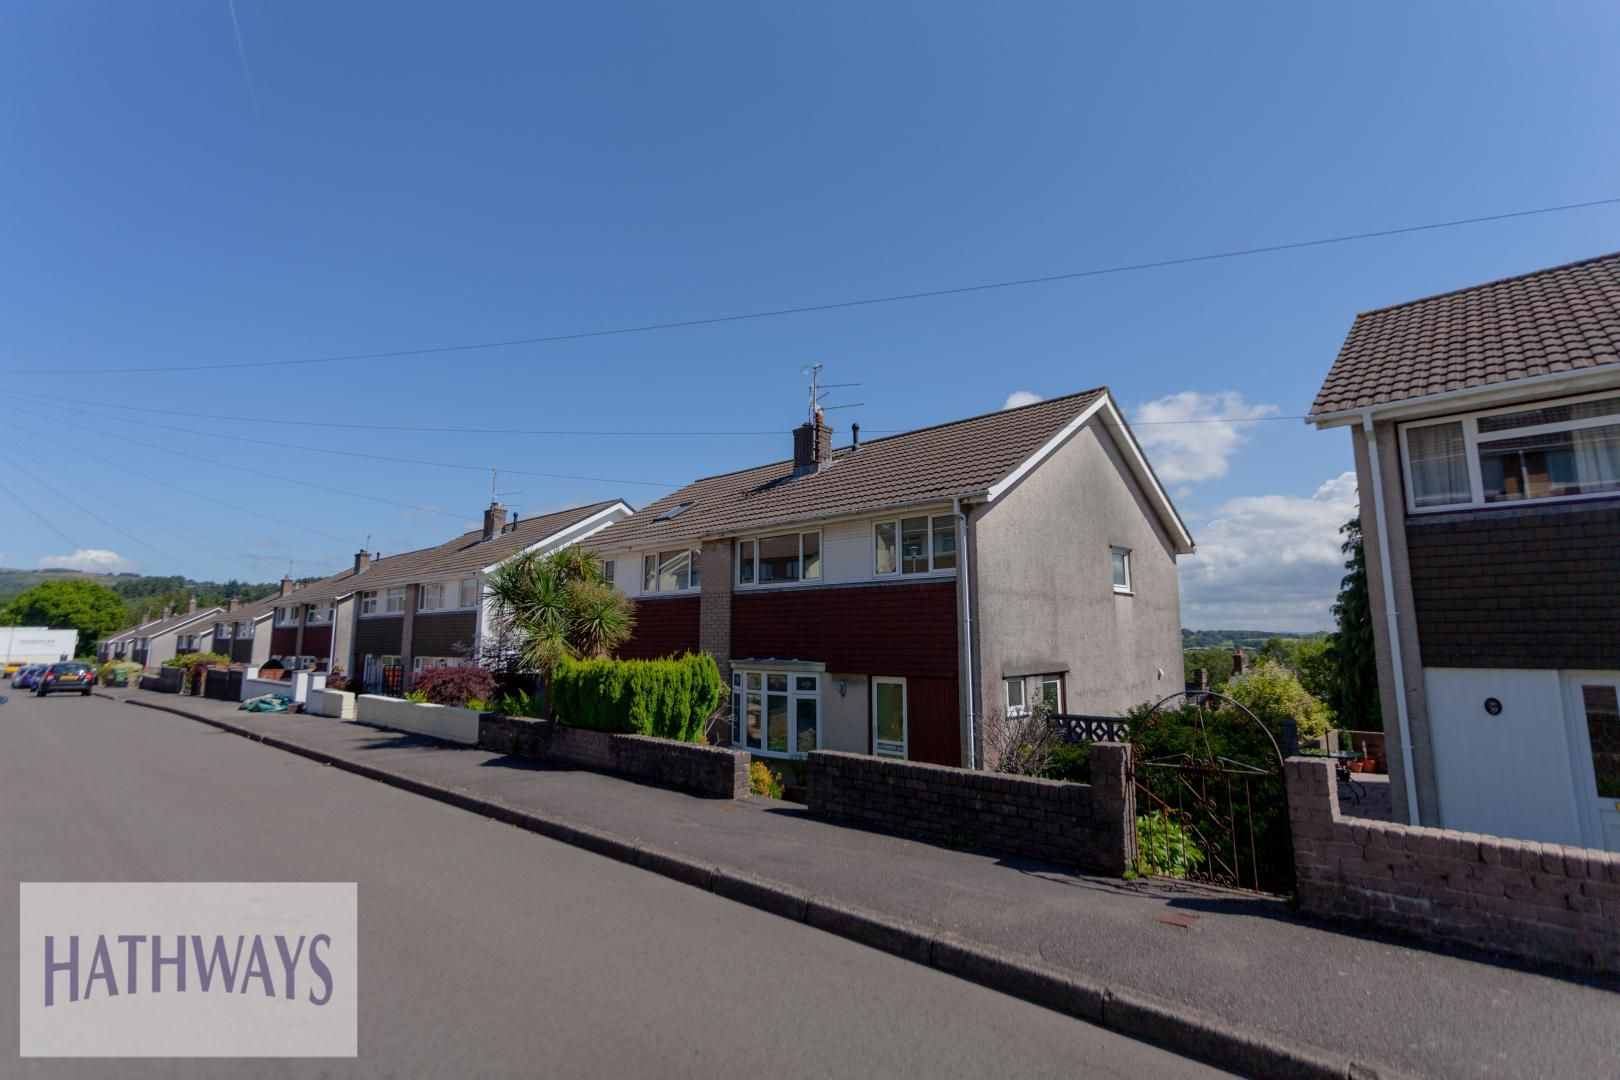 3 bed house for sale in Maes Y Celyn, NP4